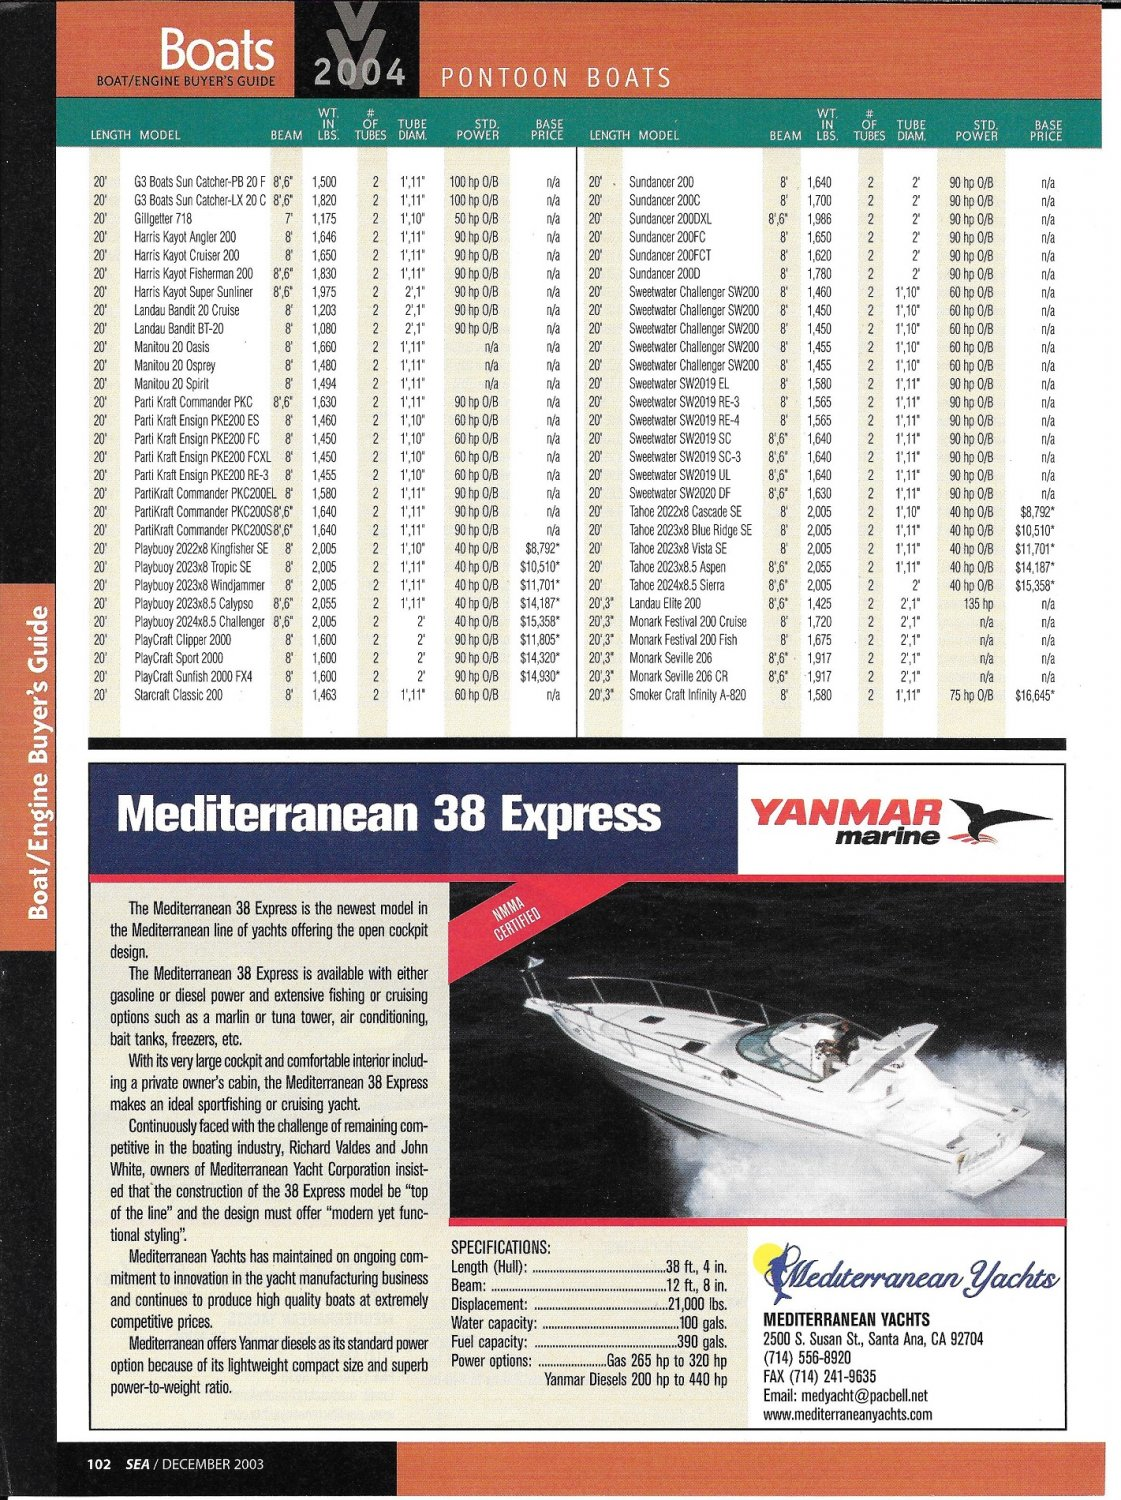 2004 Mediterranean 38 Express Yacht Review & Specs- Nice Photo